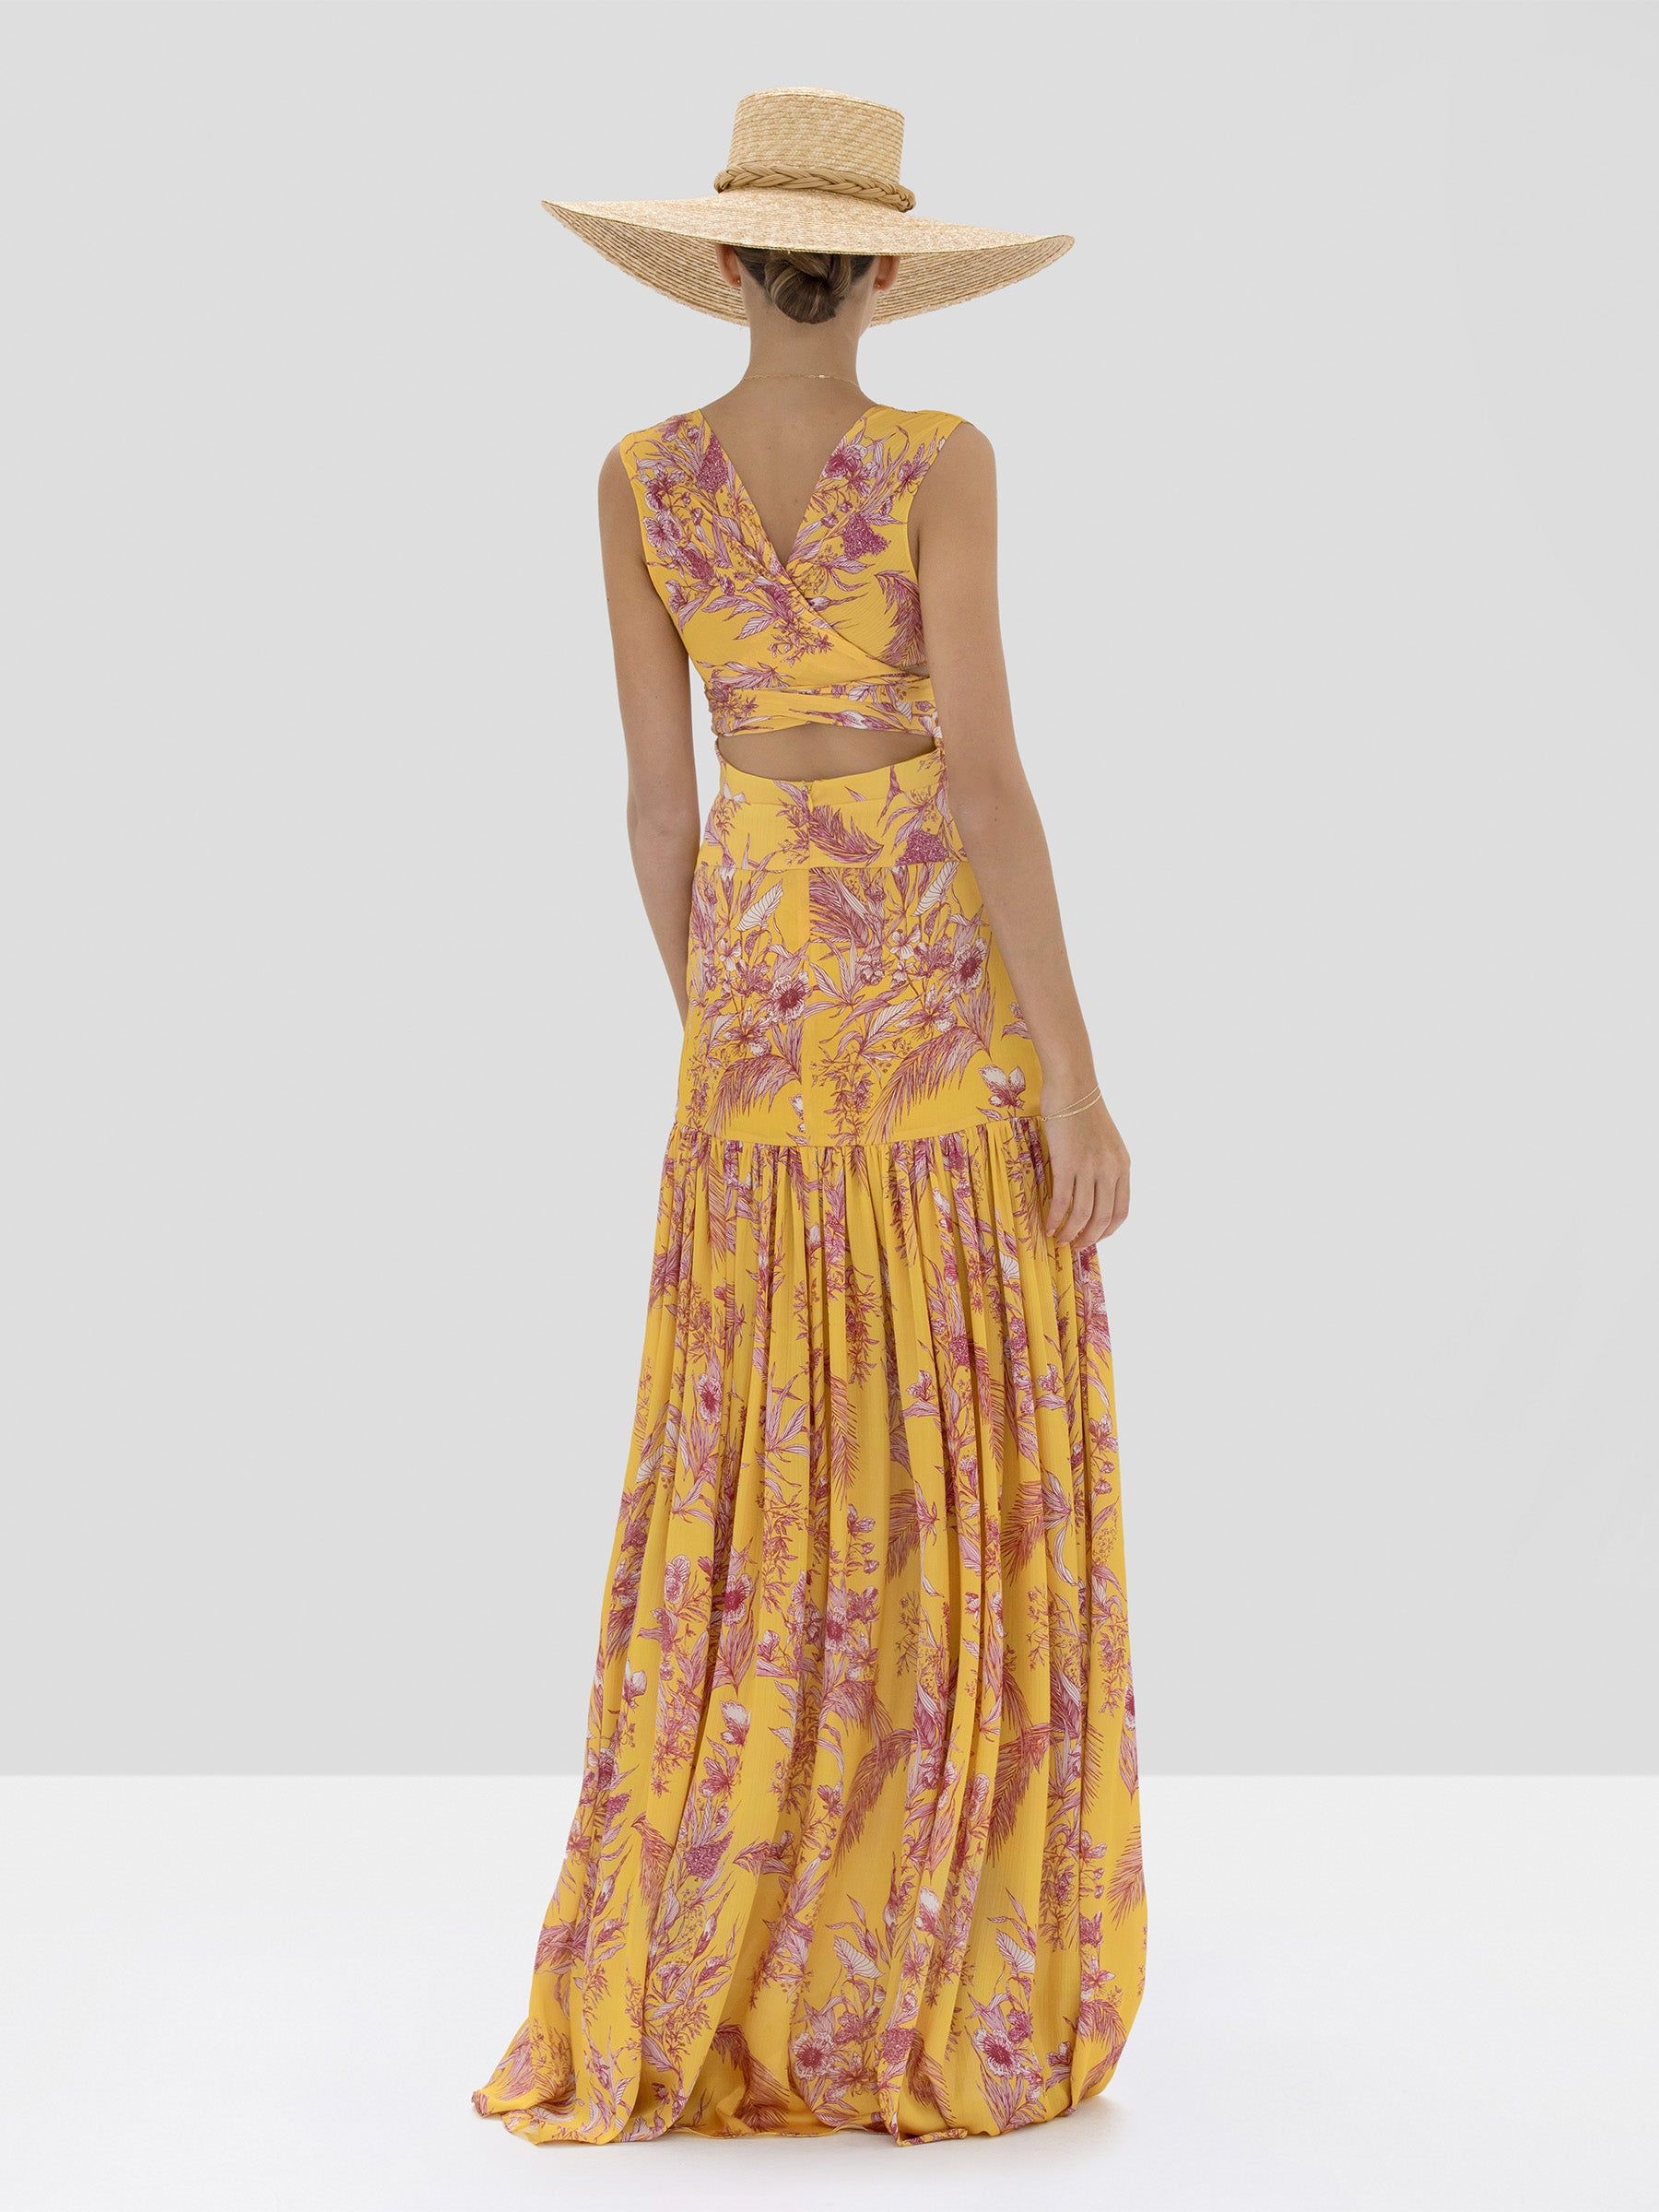 Alexis Belaya Dress in Tuscan Palm from Spring Summer 2020 Collection - Rear View